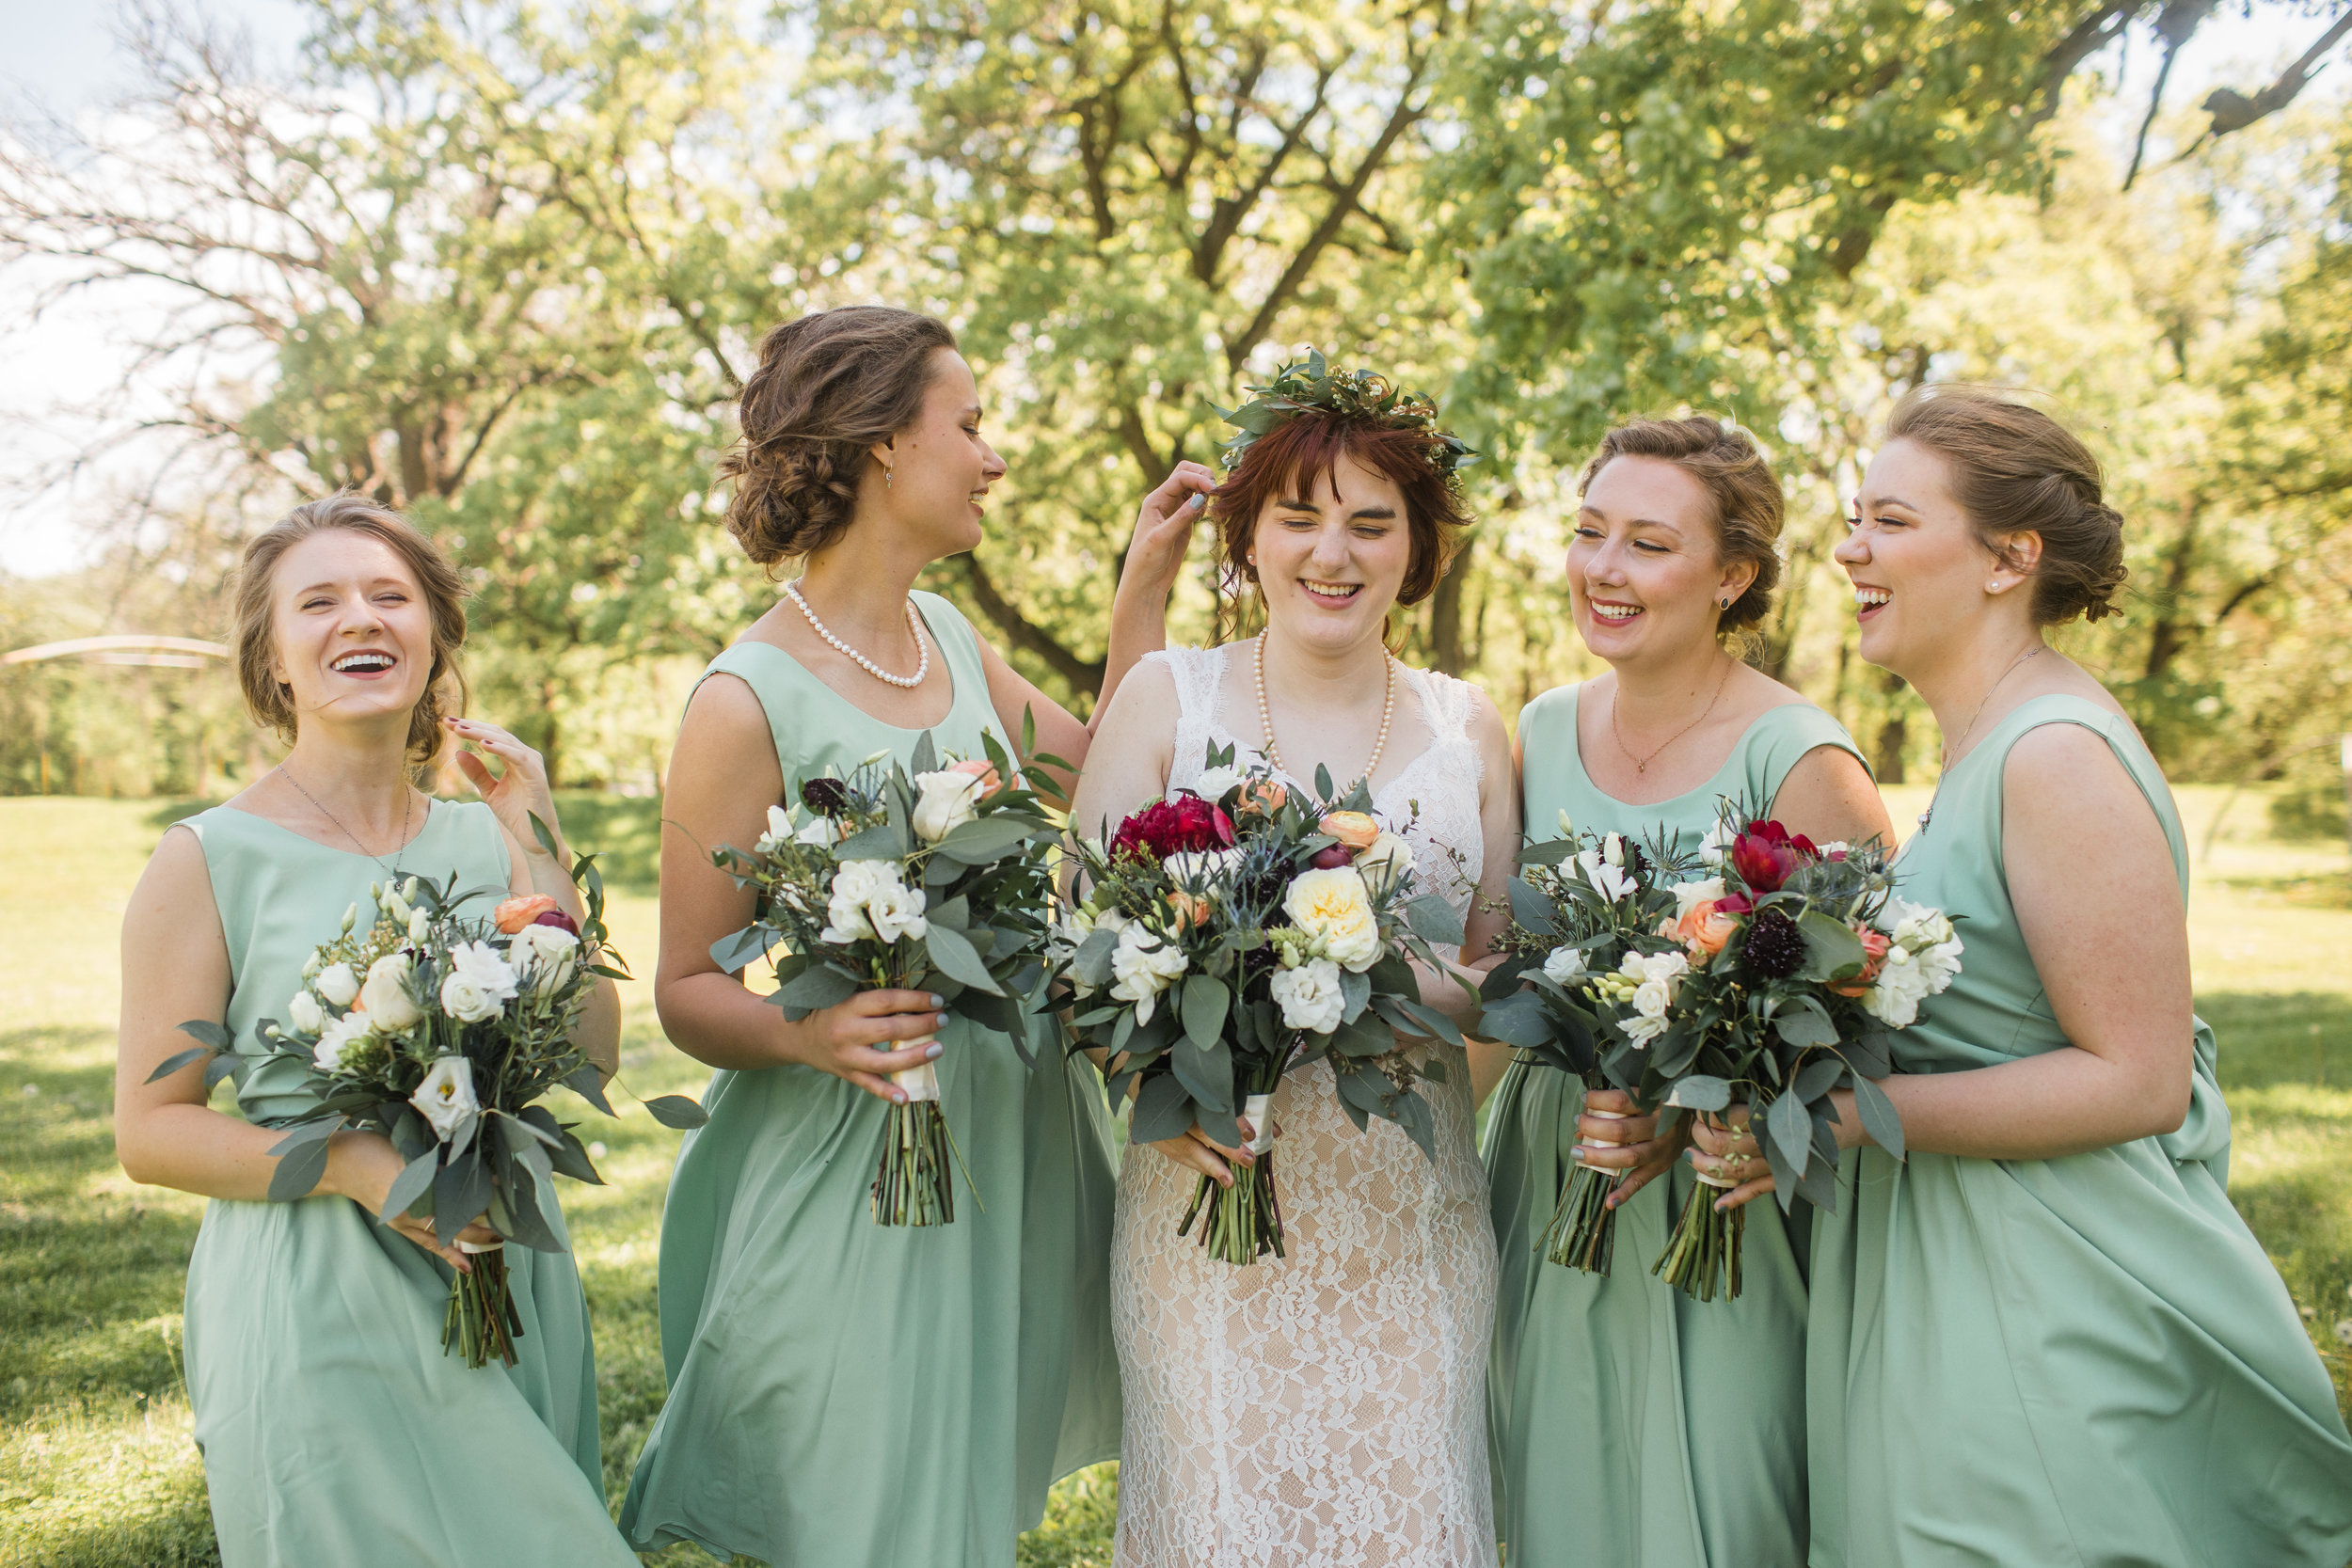 bridesmaids fixing and laughing with bride during formal wedding party photos